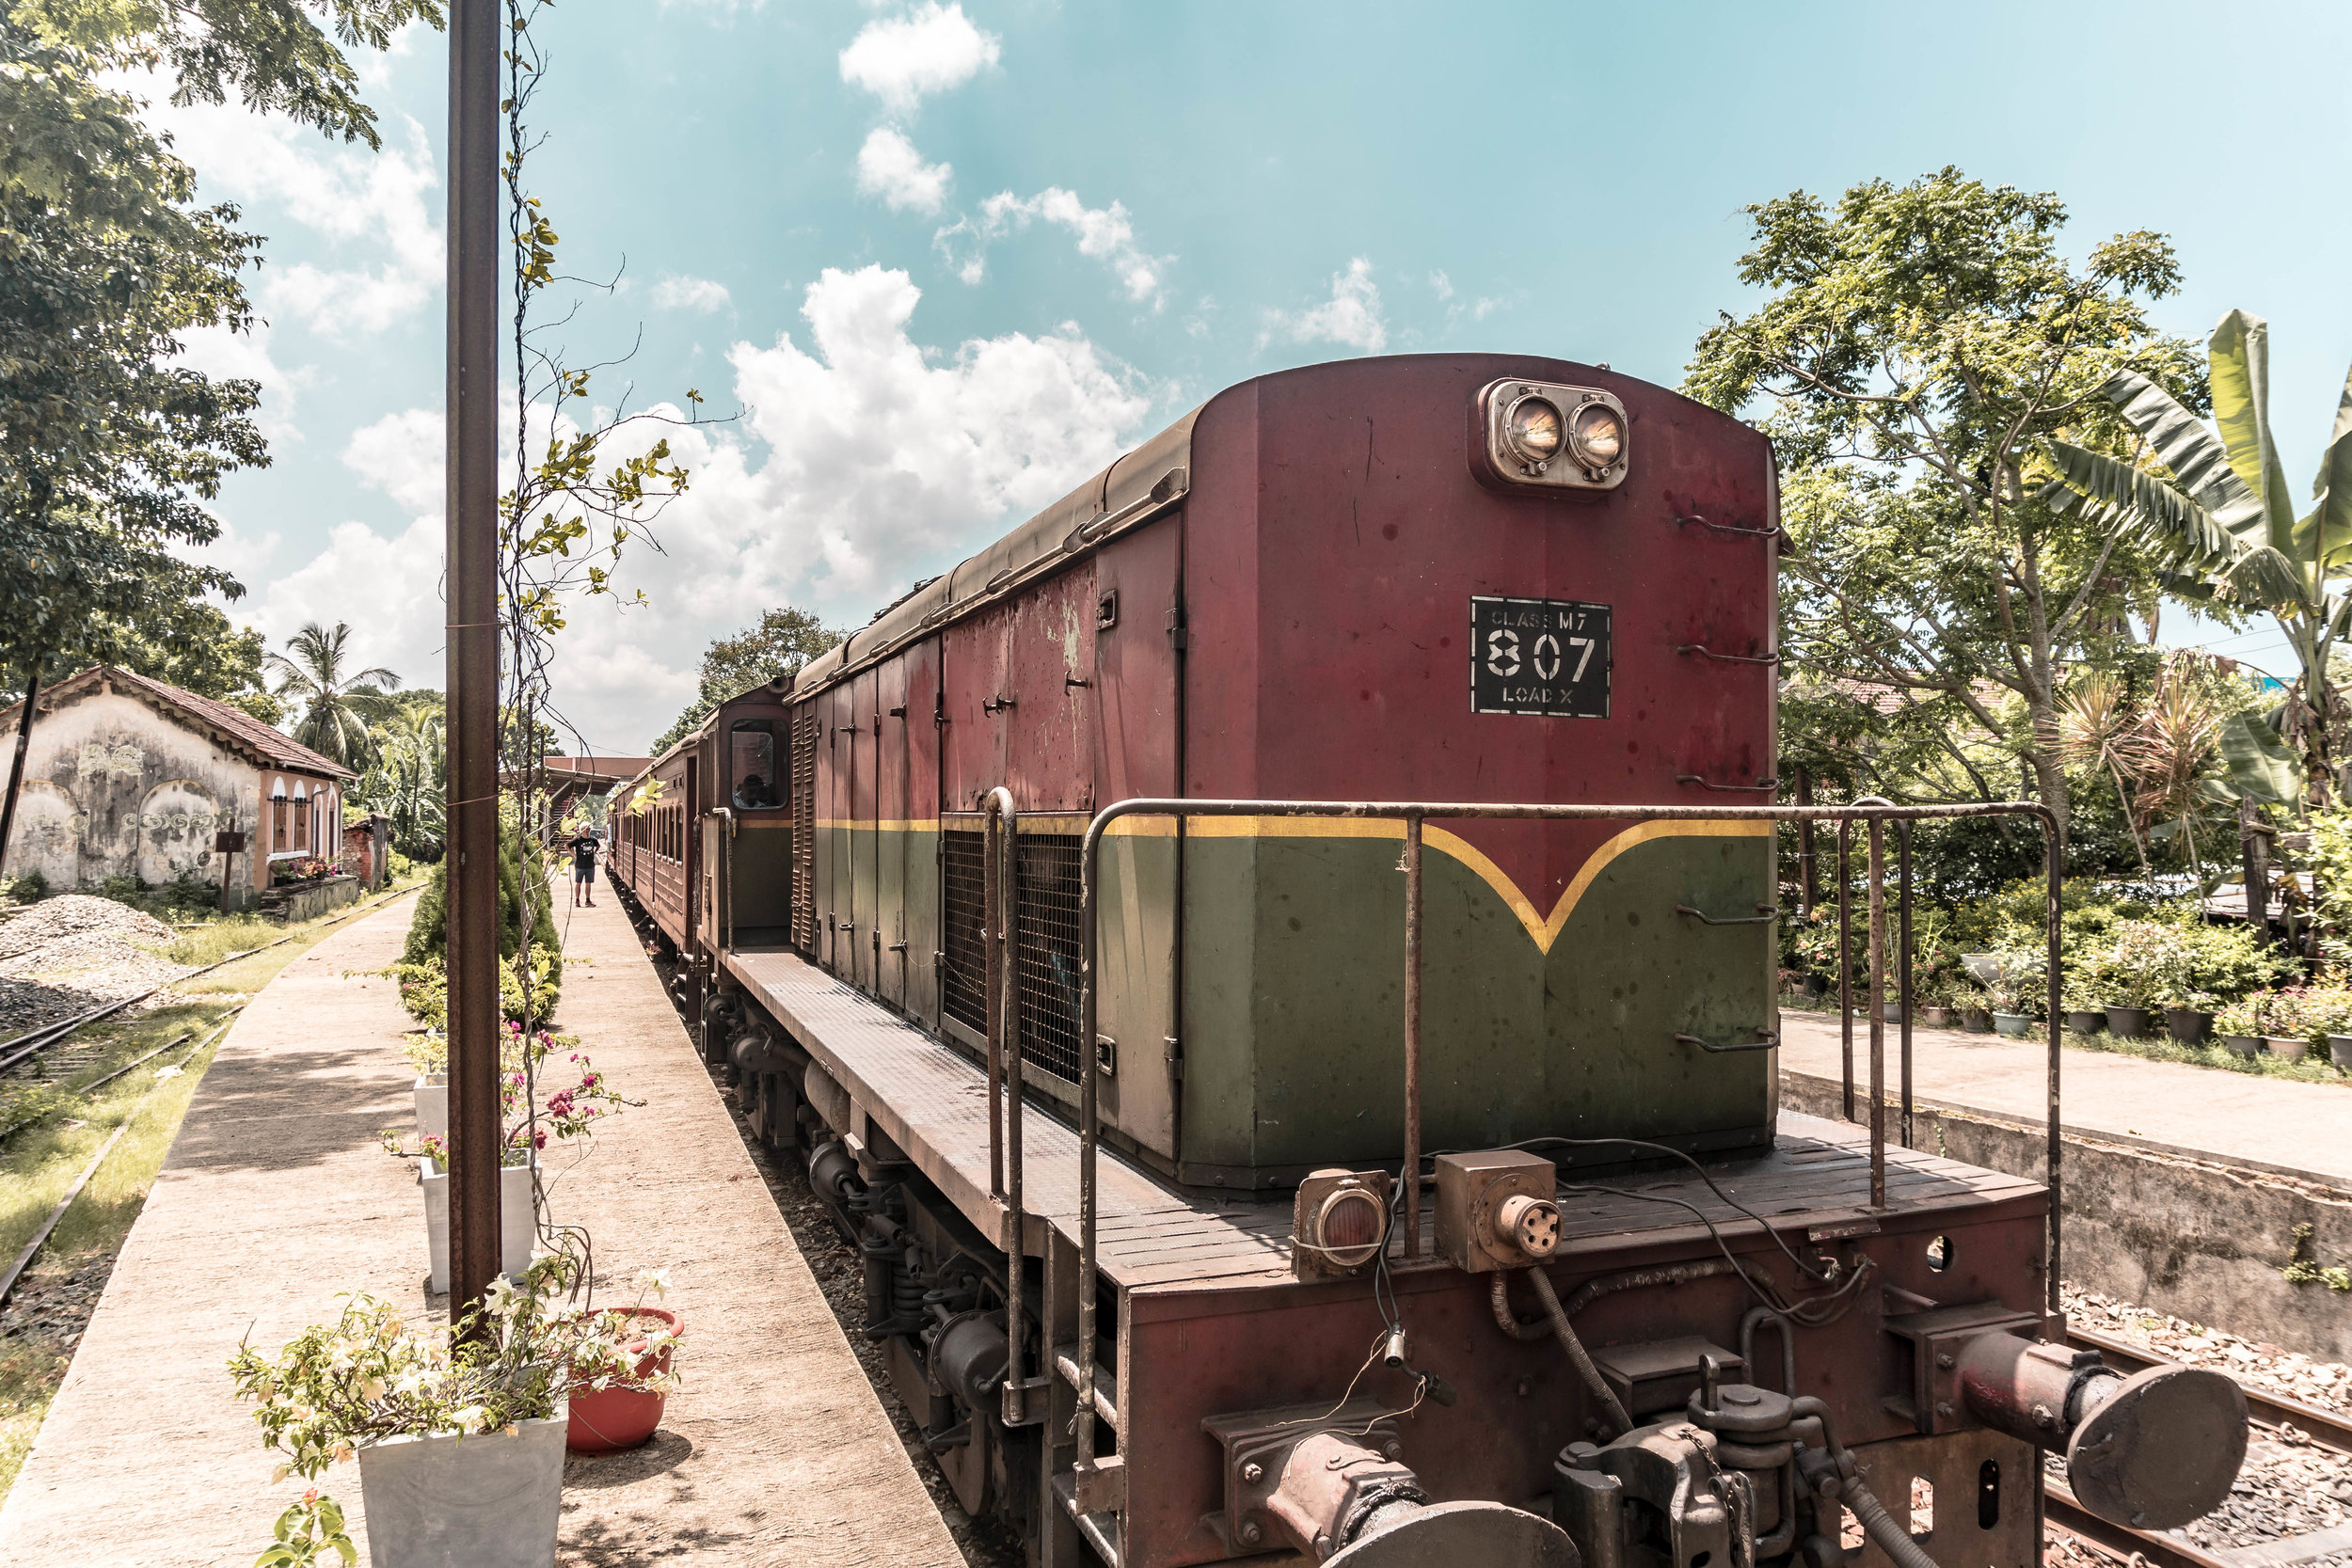 A GUIDE TO THE KANDY TO ELLA TRAIN JOURNEY IN SRI LANKA